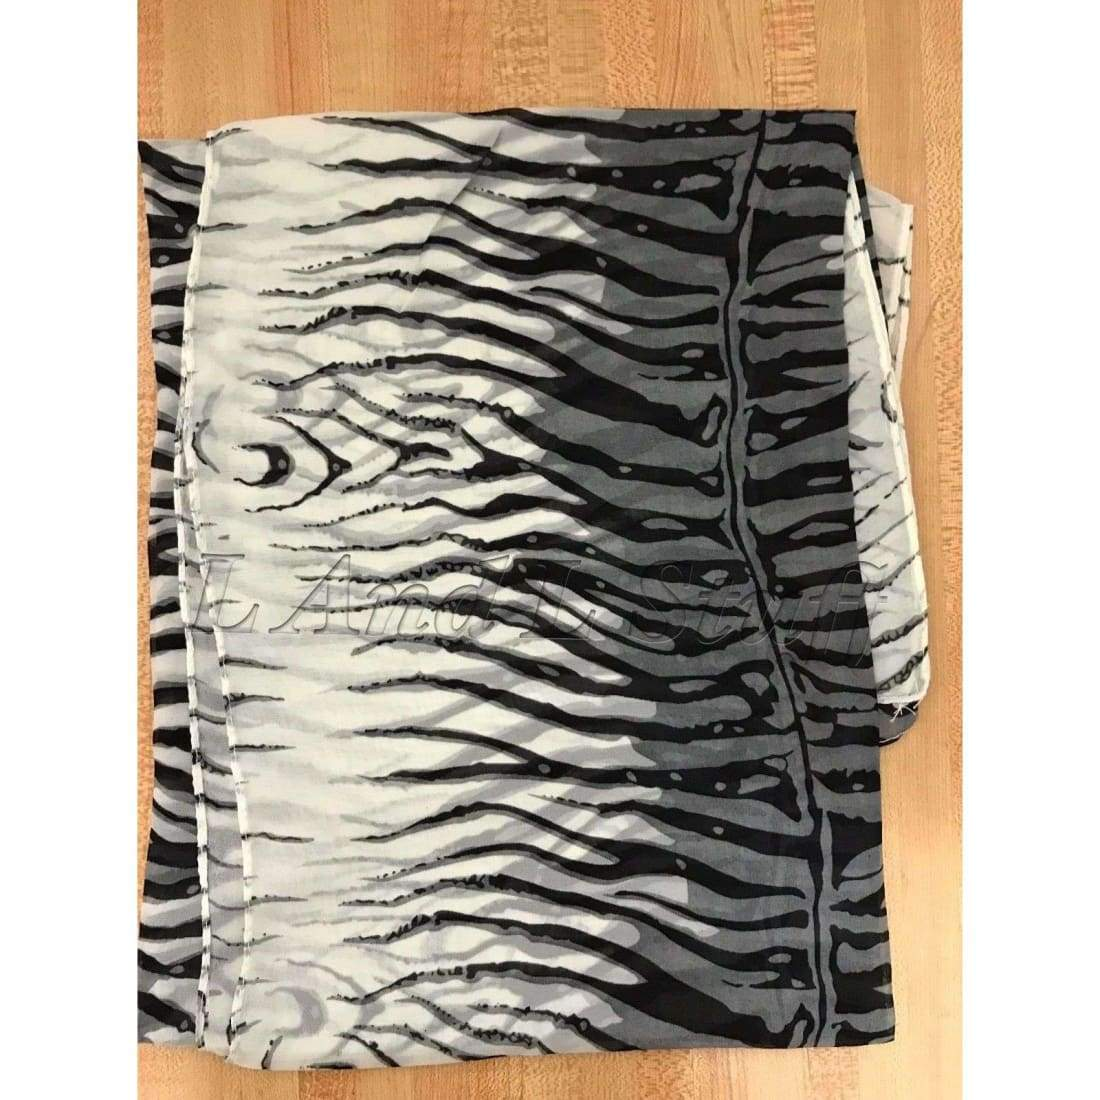 Womens Lightweight Tiger Print Sheer Scarf (Assorted Colors) Black/white Scarves & Wraps